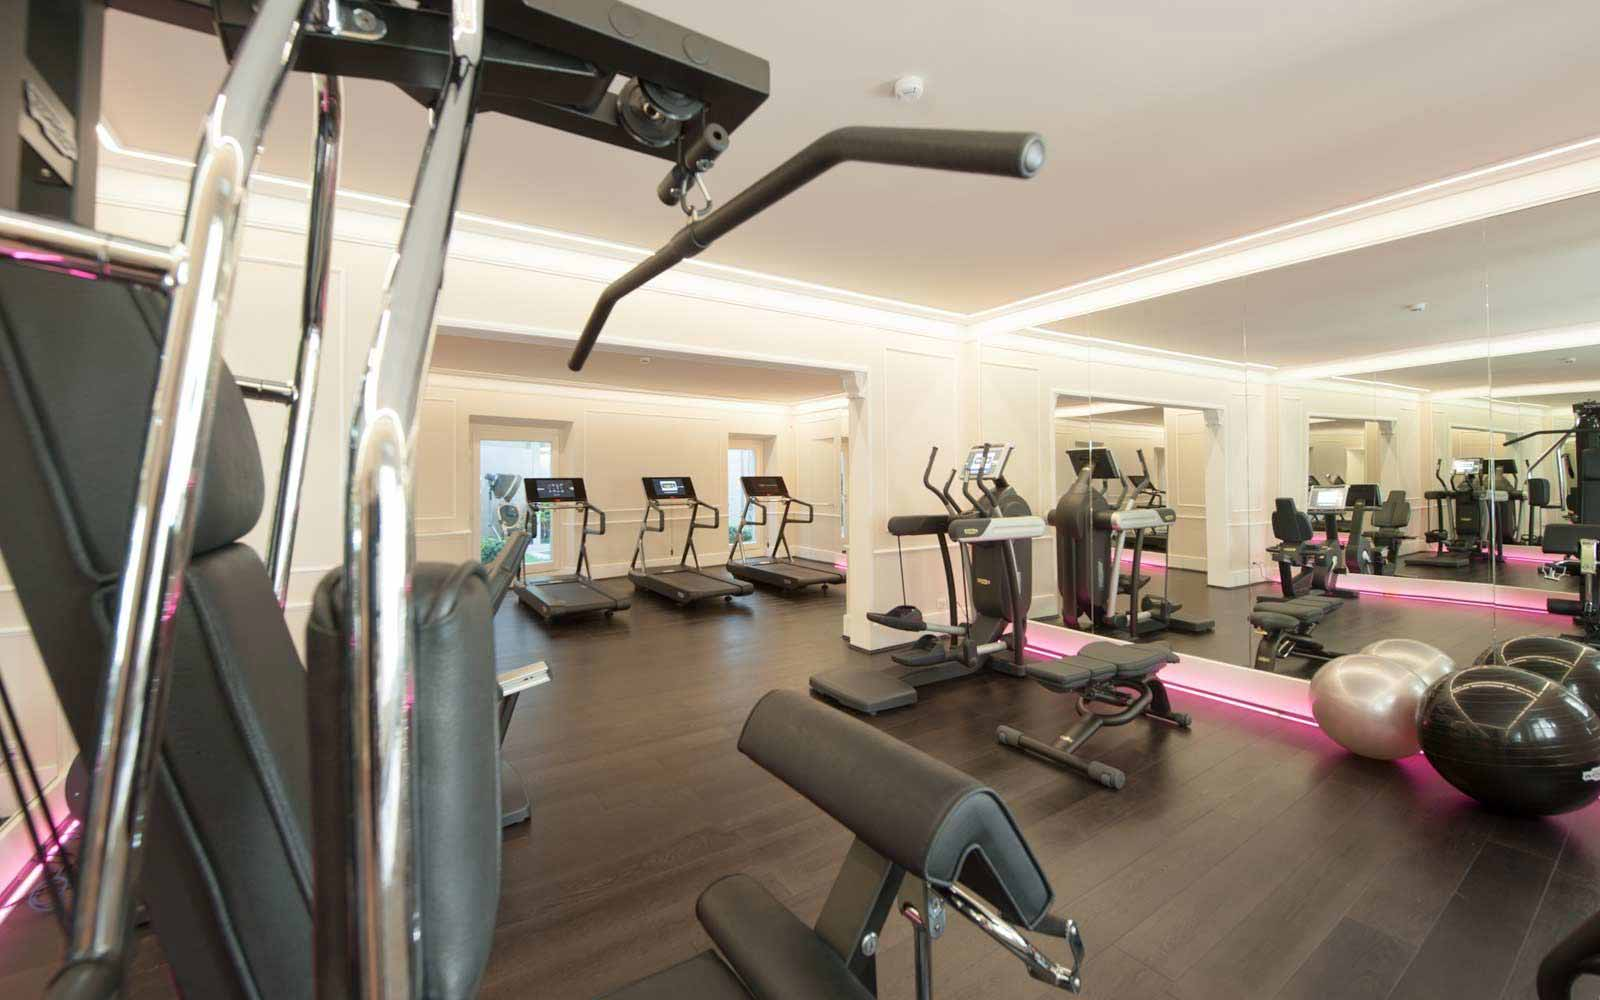 Fitness room at Hotel Brunelleschi